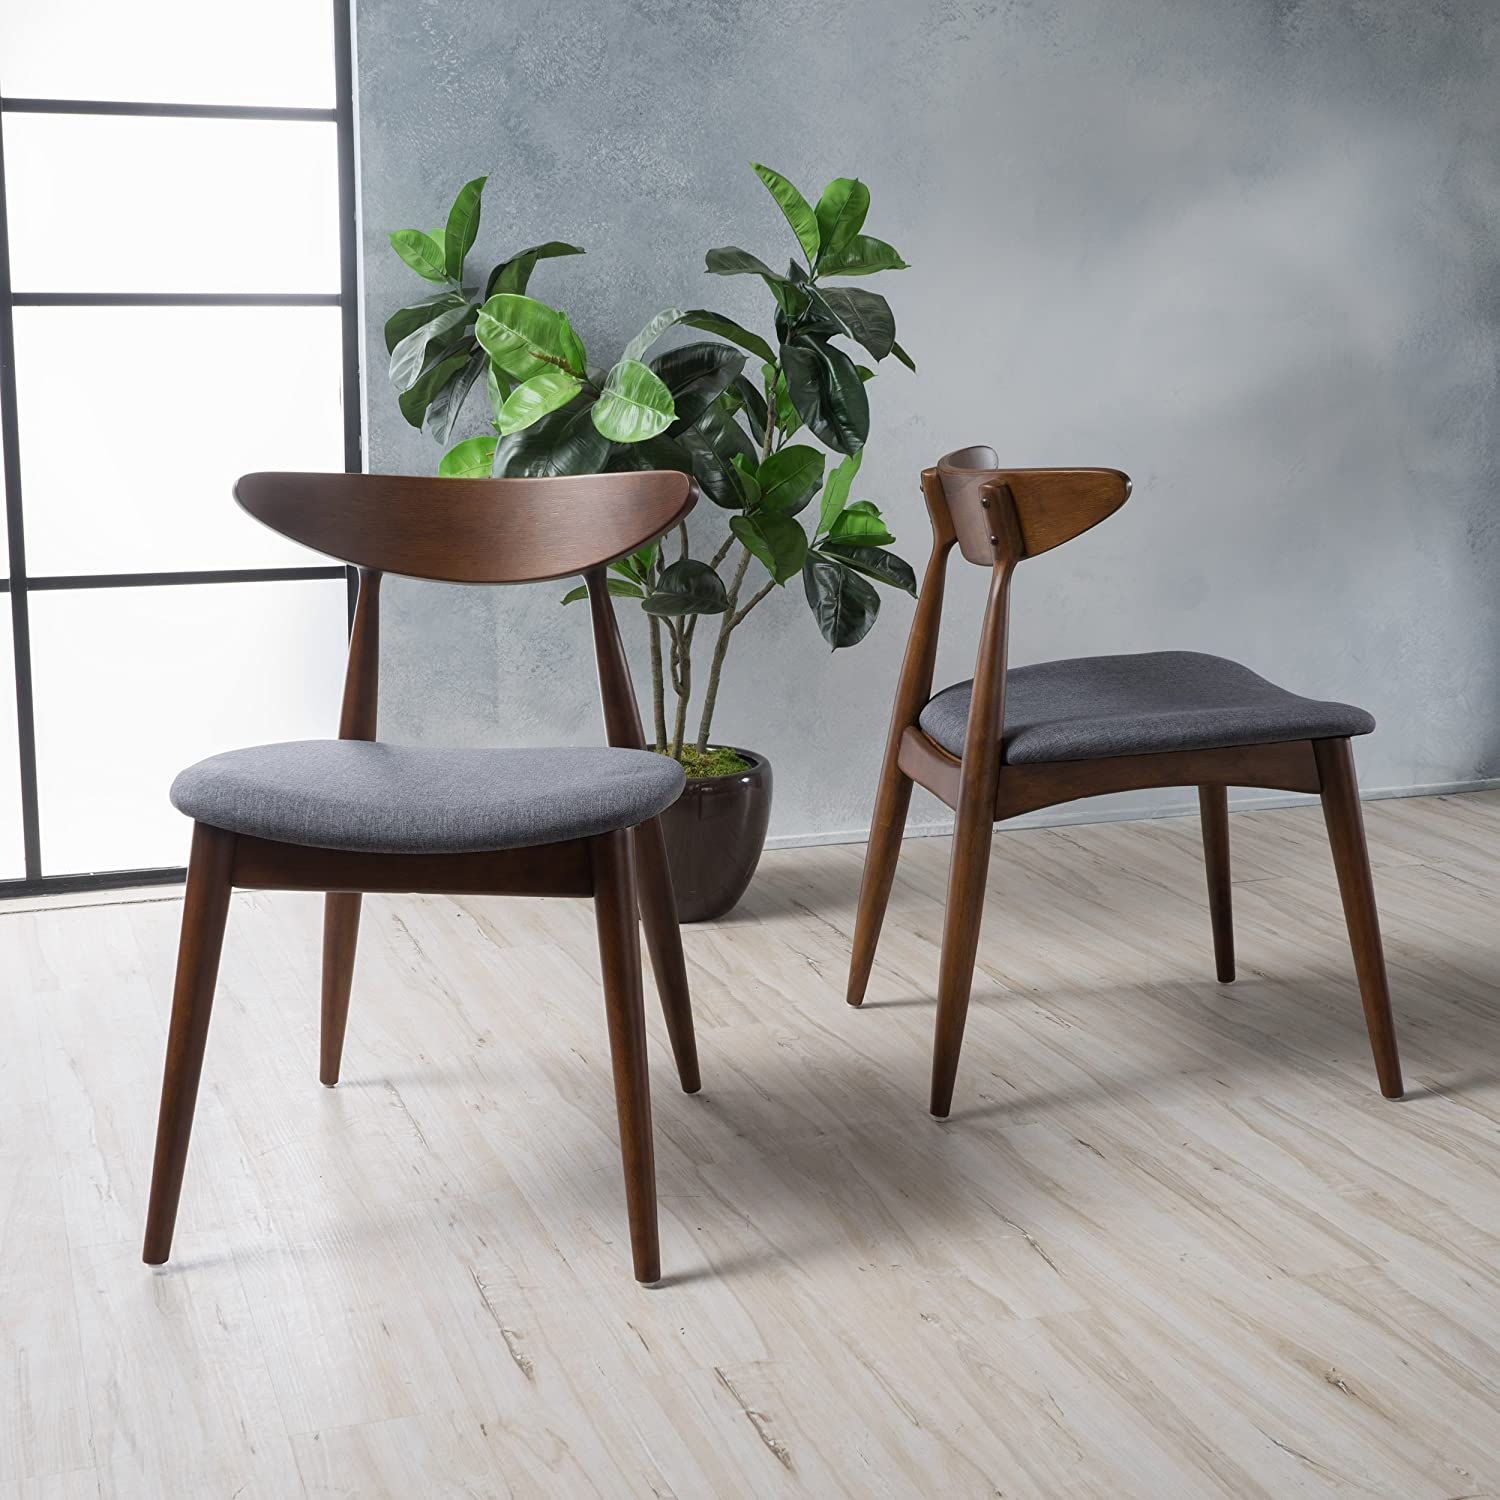 Christopher Knight Home Barron Dining Chair Set of 2 , CHARCOAL